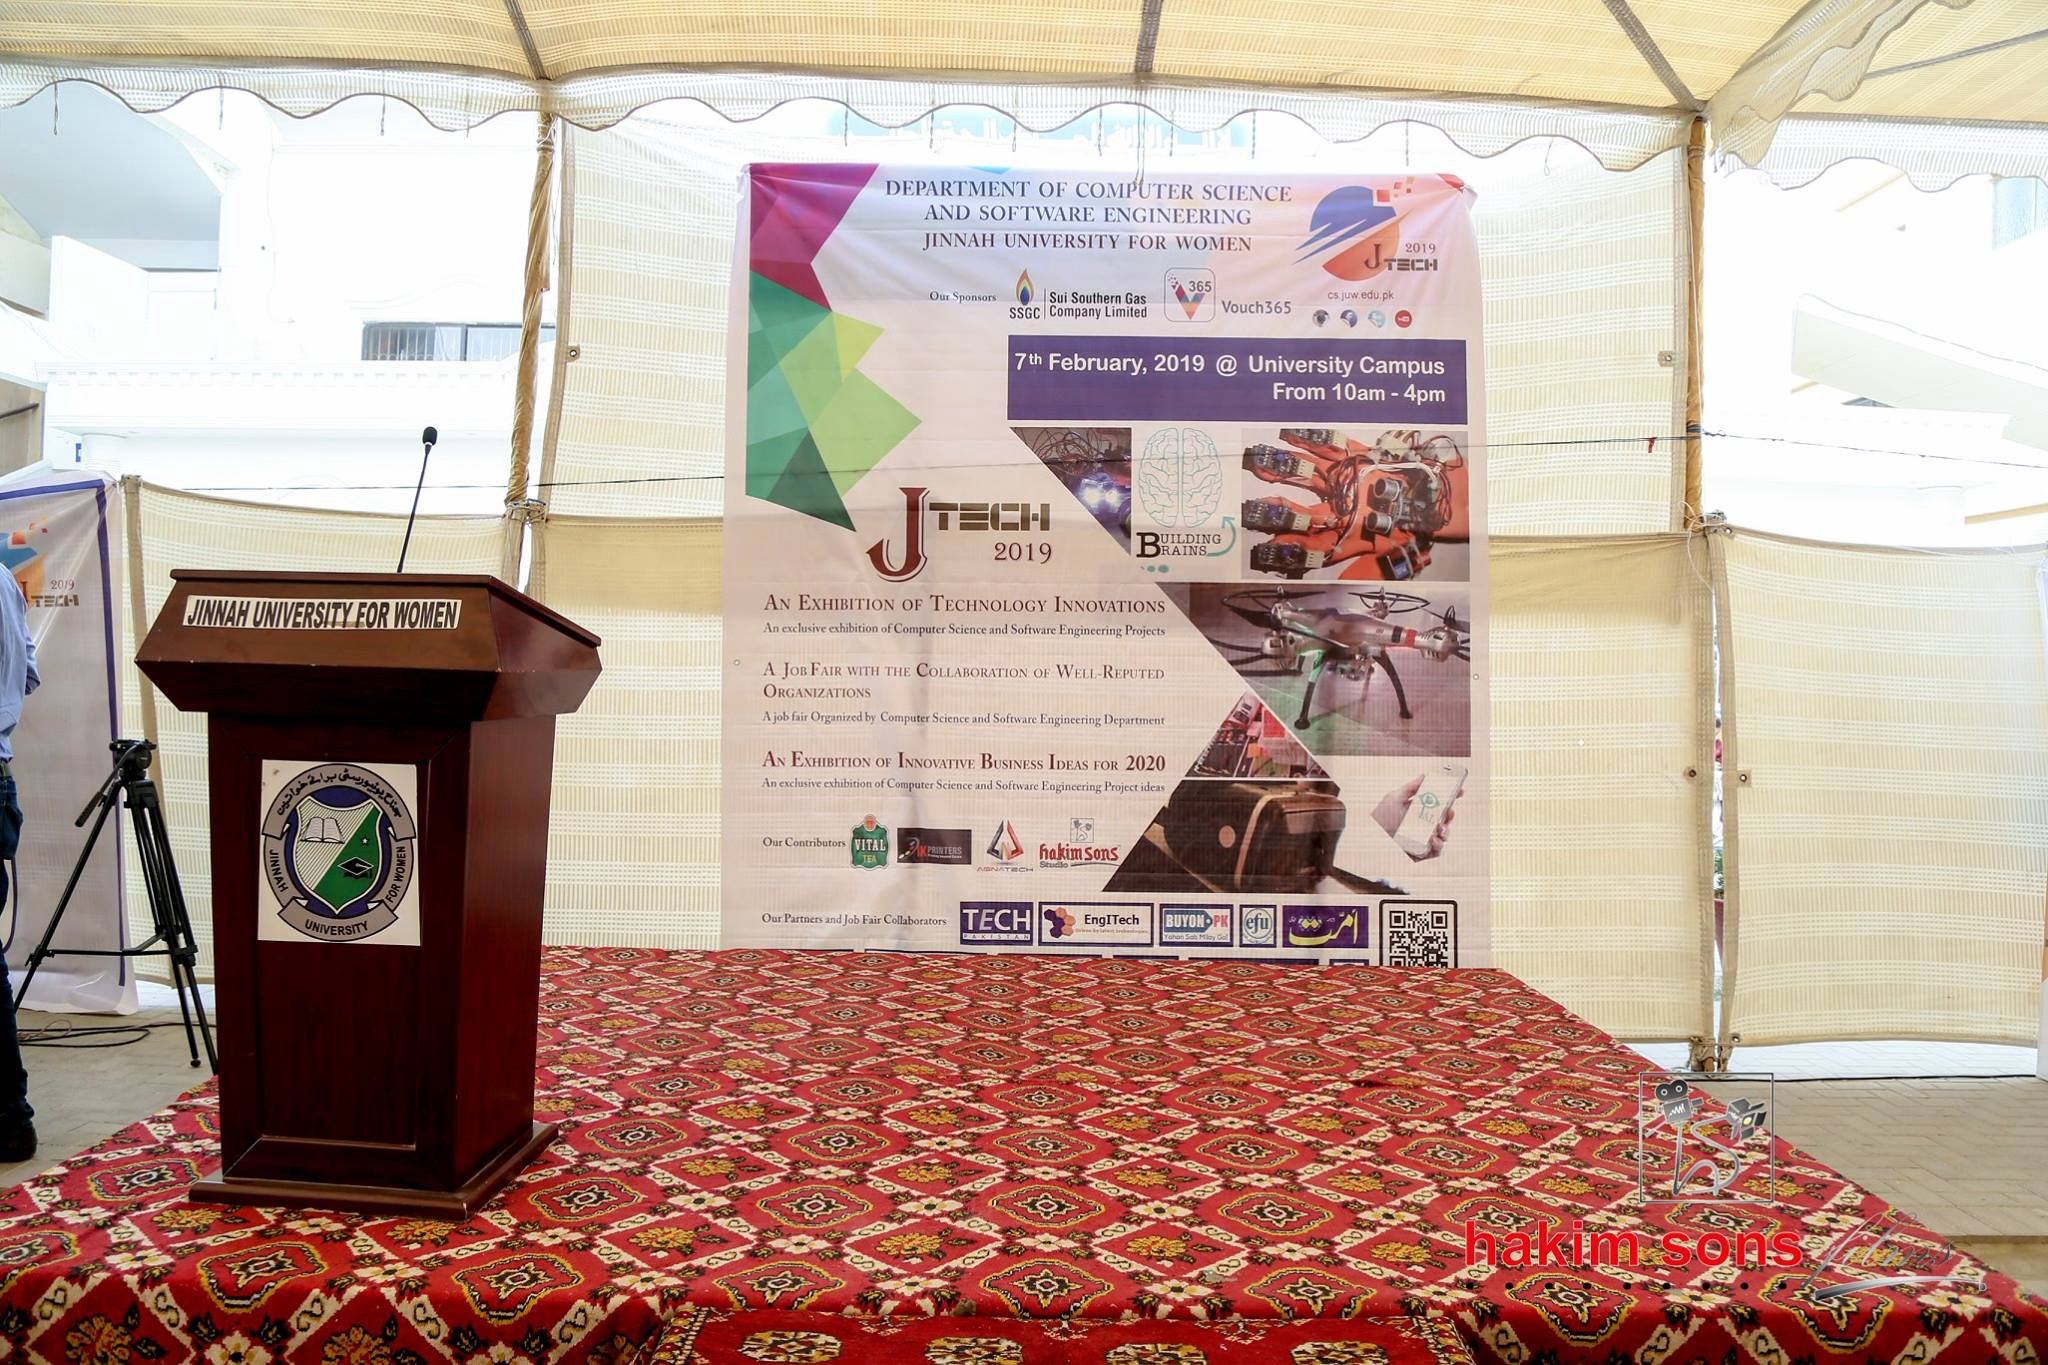 Stage and Podium for JTech 2019 at Jinnah University for Women (JUW), Karachi